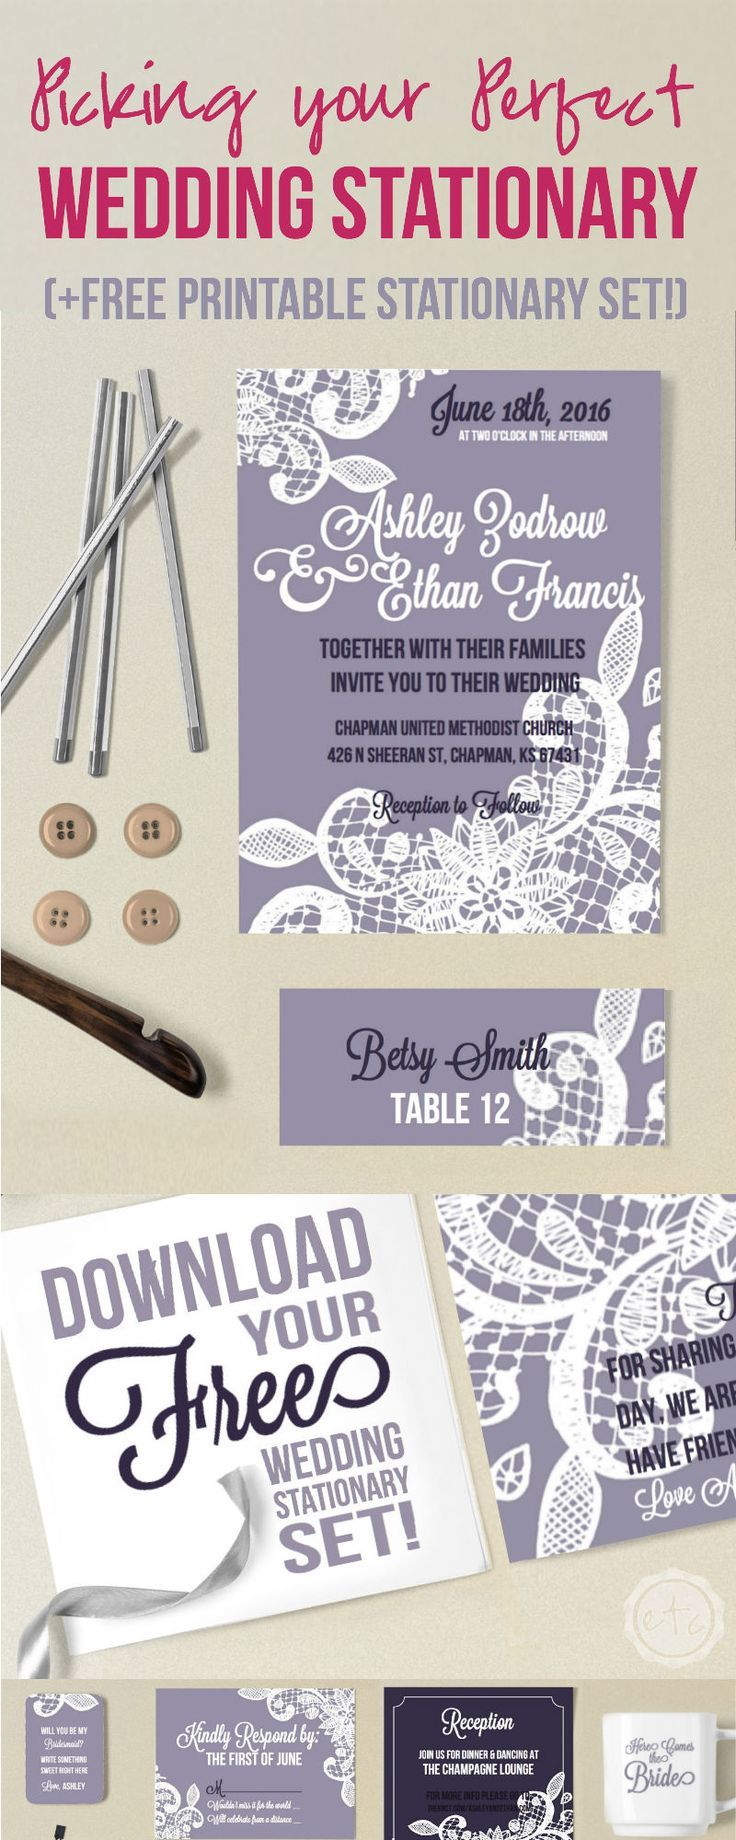 Picking your Perfect Wedding Stationary Free Printable